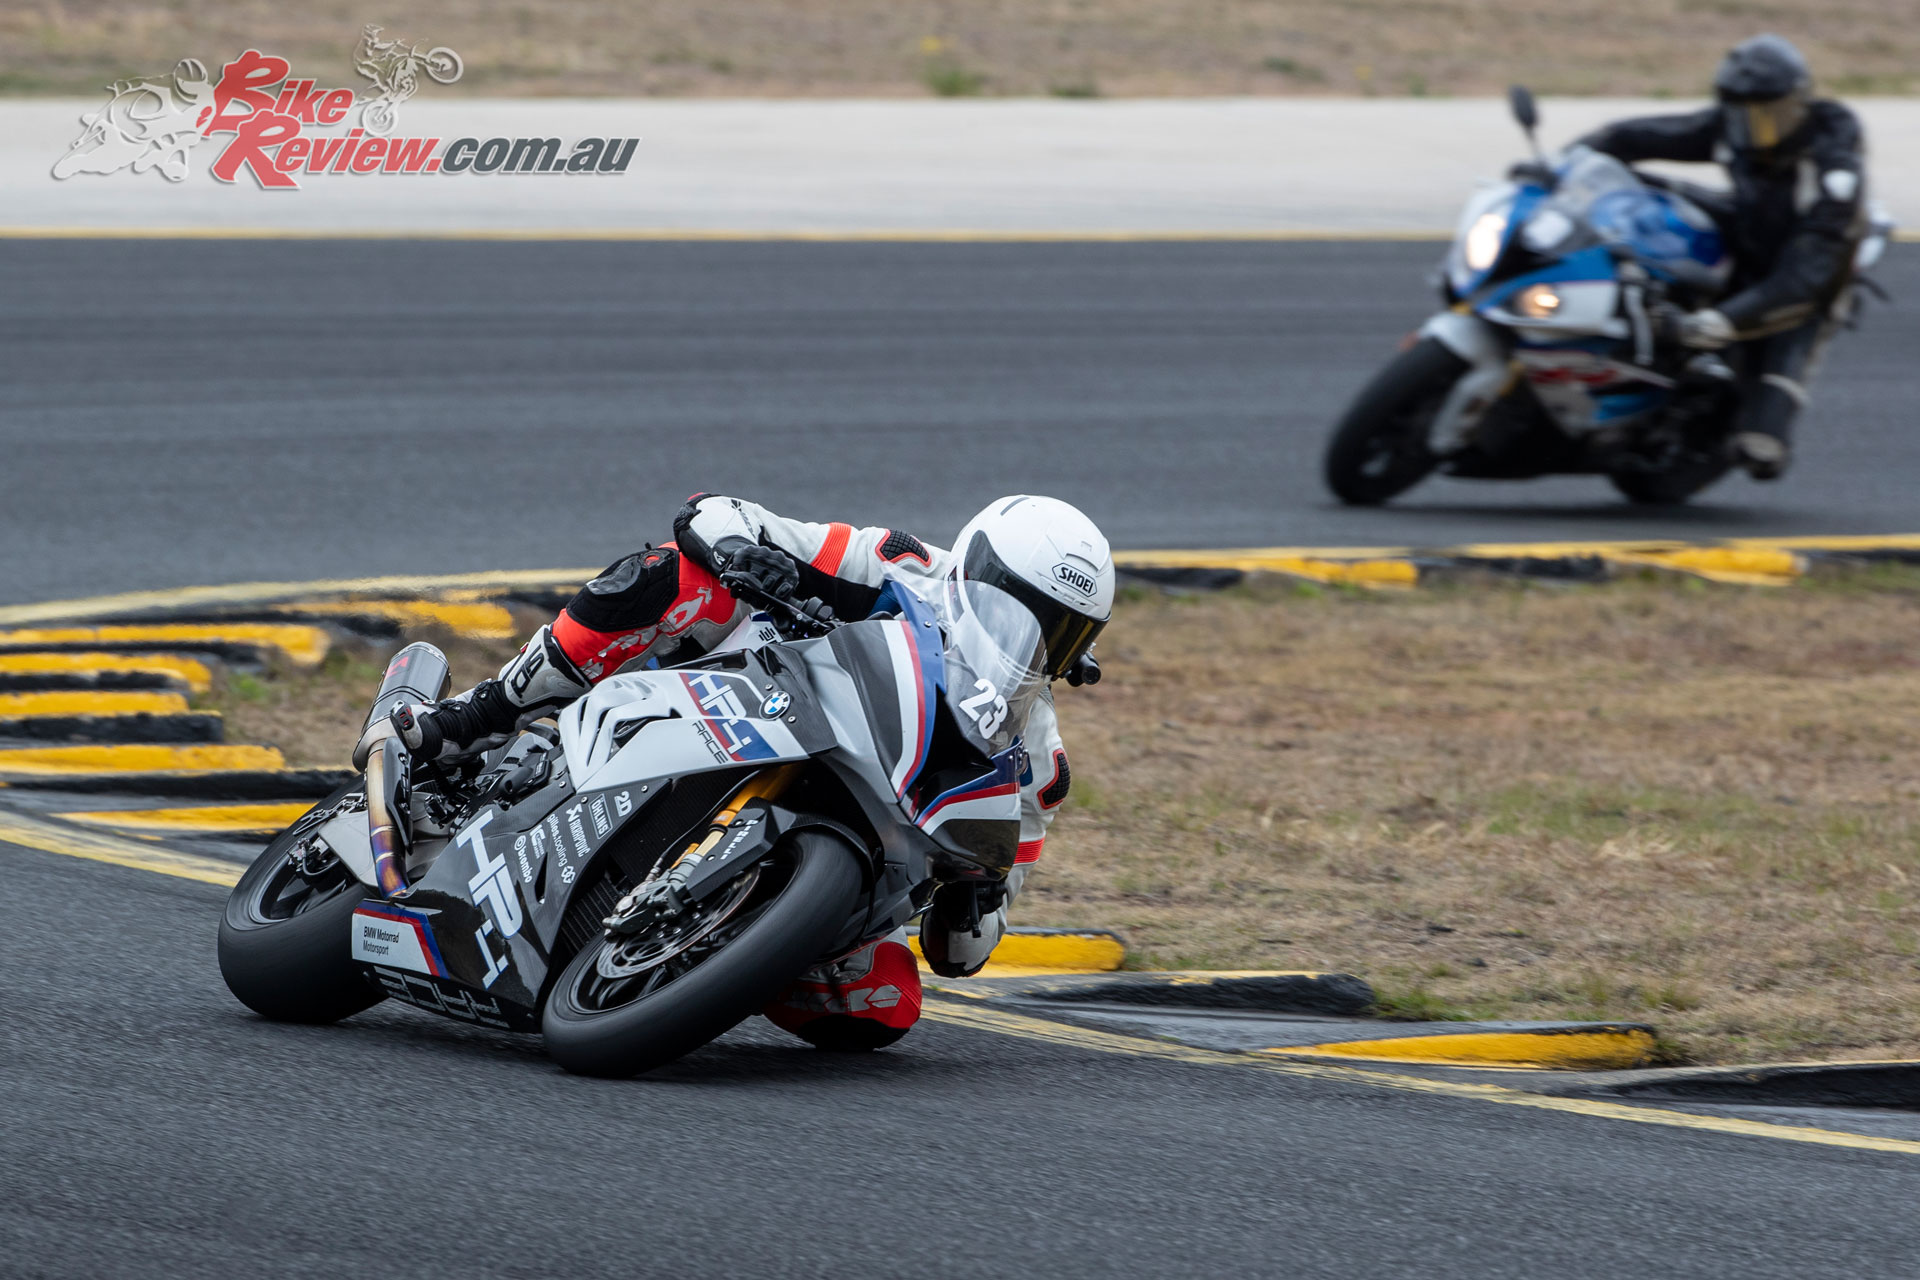 Jeff testing out the BMW HP4 Race at Sydney Motorsport Park